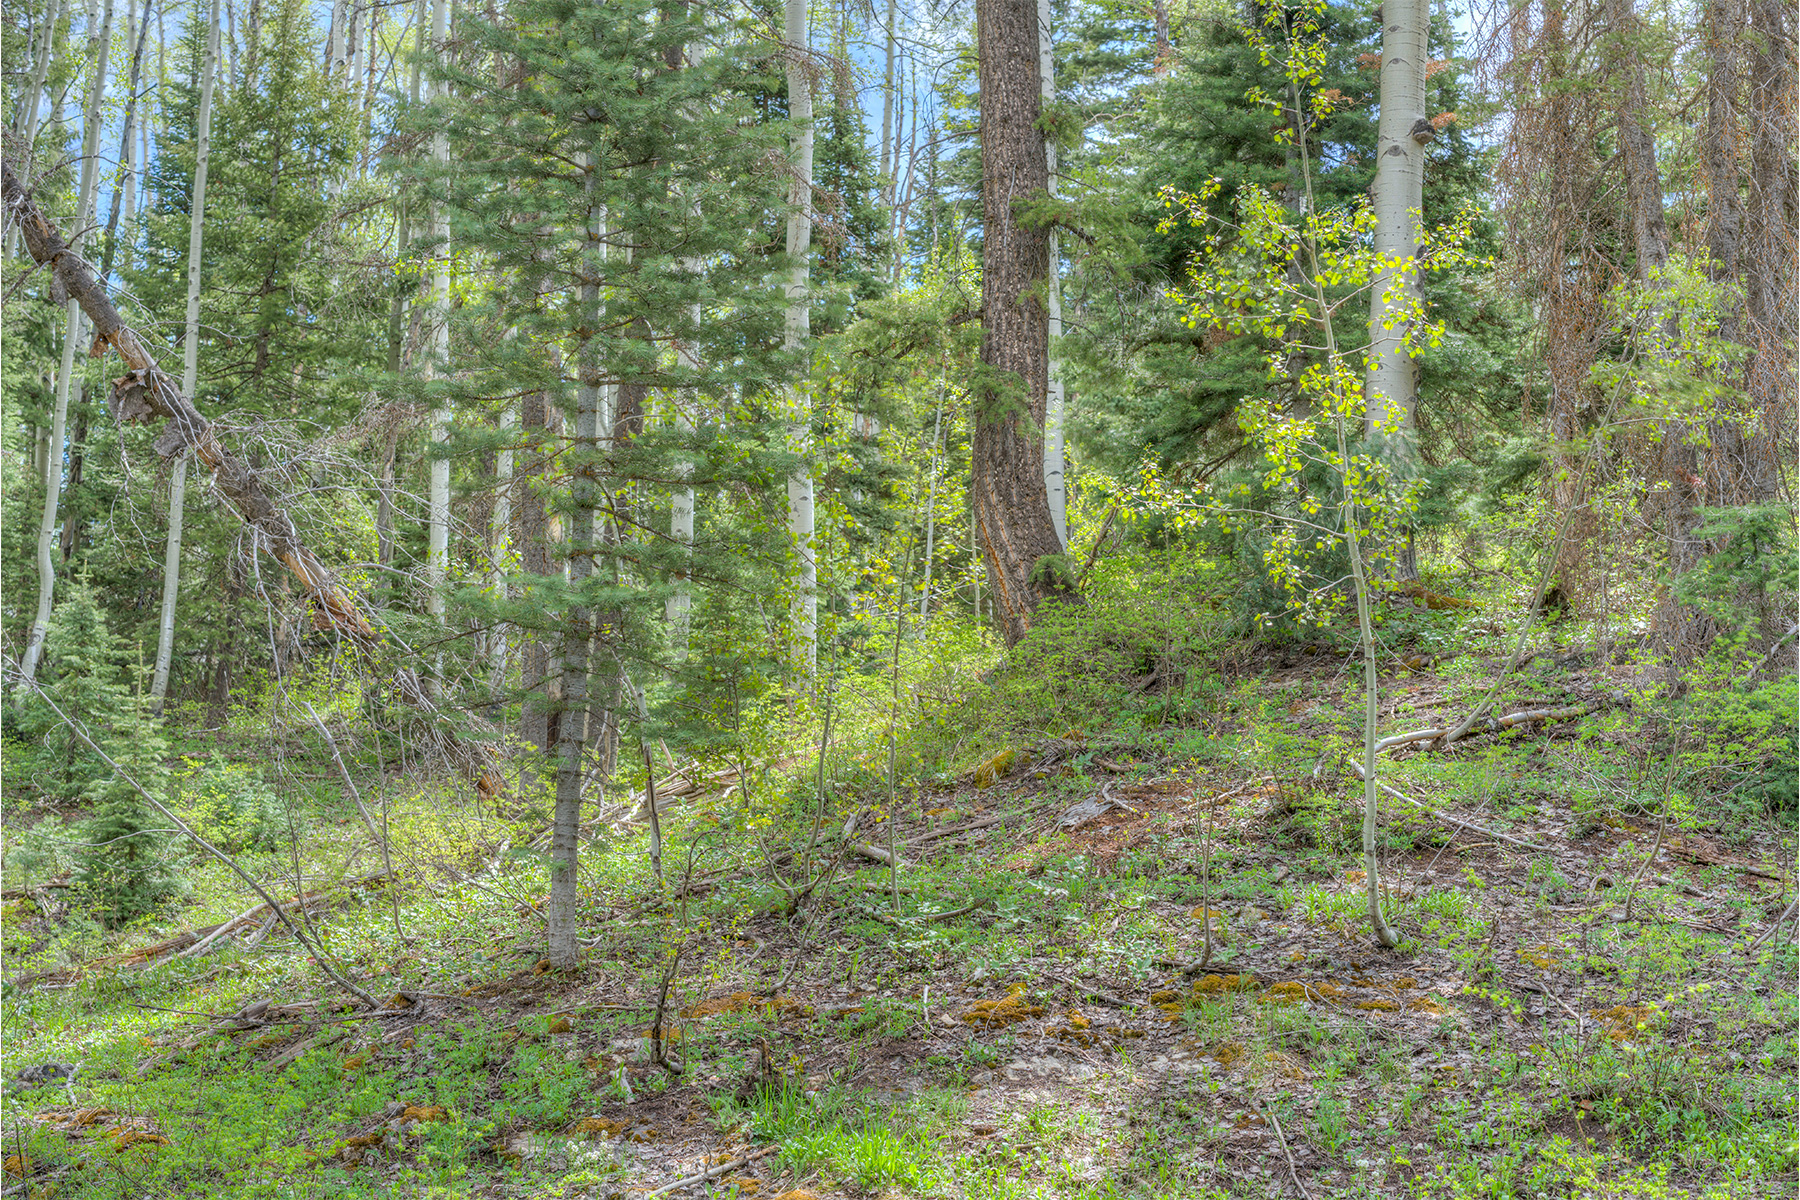 Additional photo for property listing at 152 Snowden 152 Snowden Durango, Colorado 81301 United States